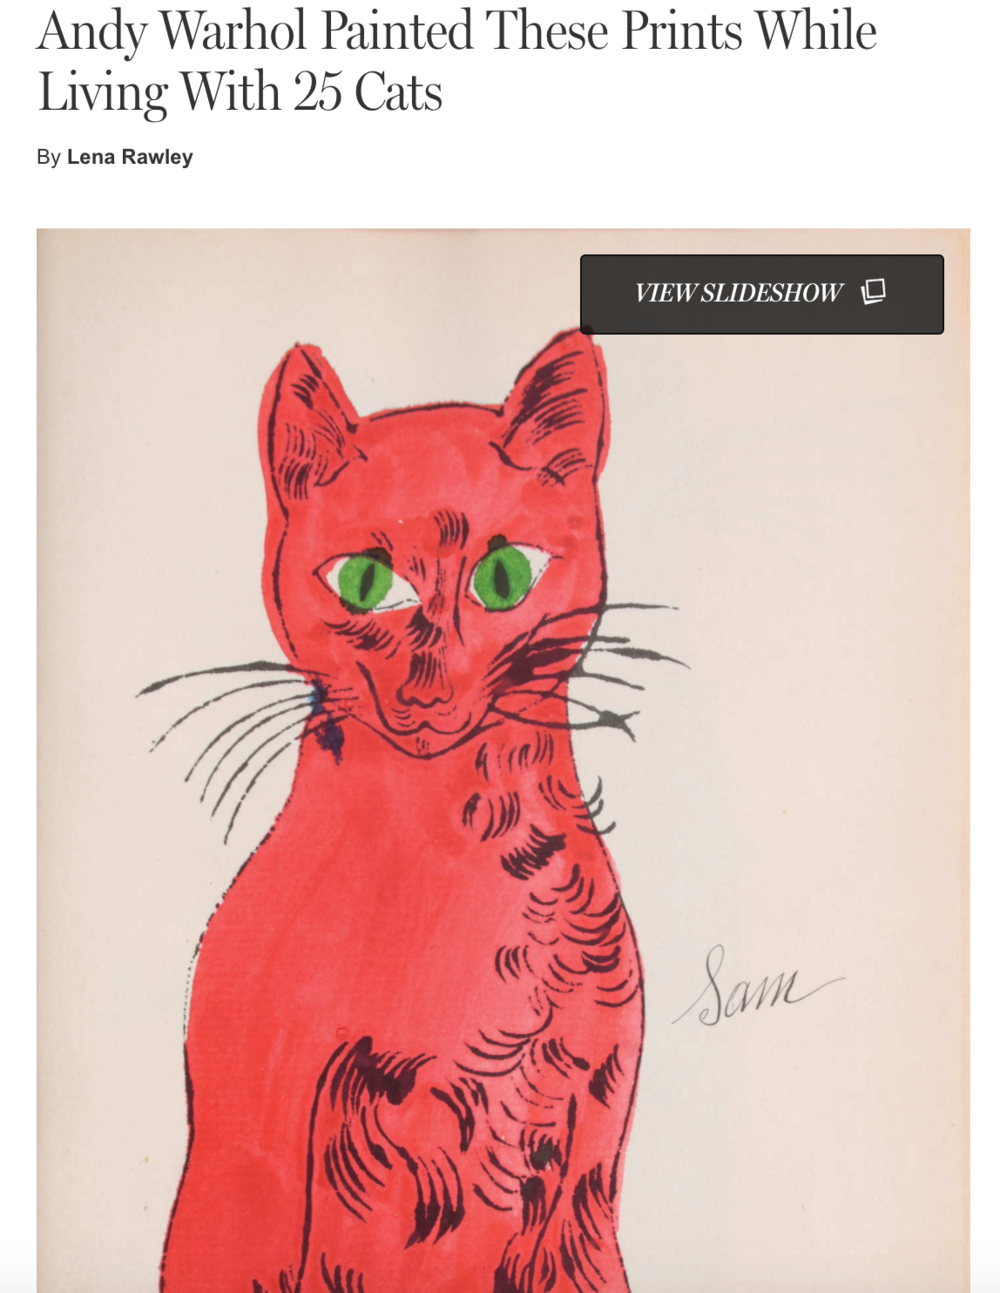 New York Magazine Lena Rawley Andy Warhol Dance Diagram 1961 In The 1950s Worked As A Freelance Childrens Book Illustrator While Sharing Lexington Avenue Apartment With His Mother And 25 Cats